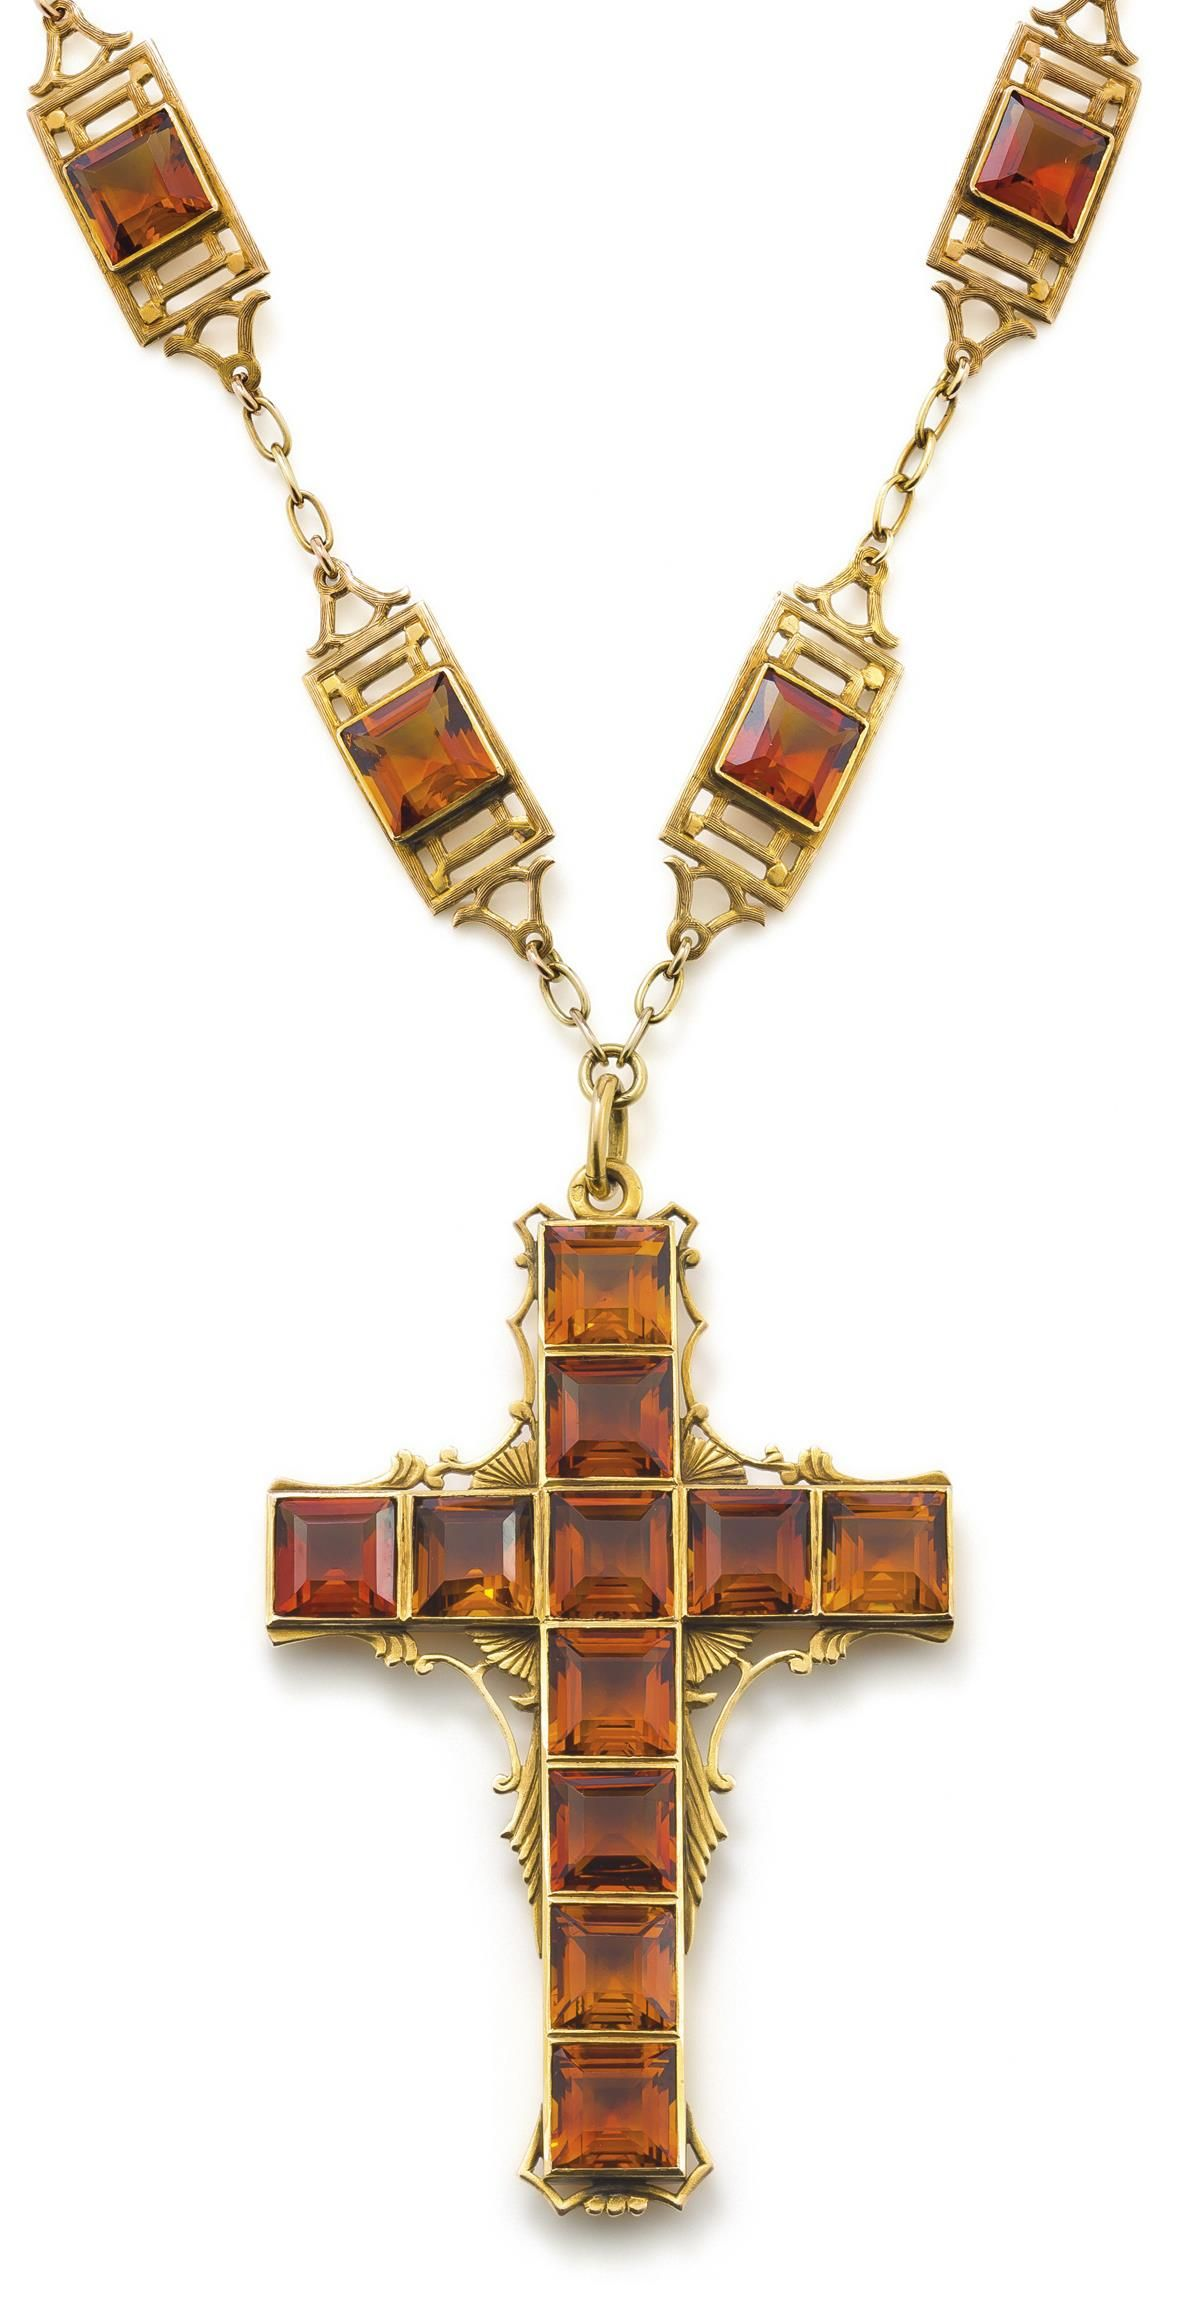 A french citrine cross pendent necklace the necklace composed of ten a french citrine cross pendent necklace the necklace composed of ten tooled rectangular plaques each set to the centre with a square cut citrine suspending aloadofball Gallery